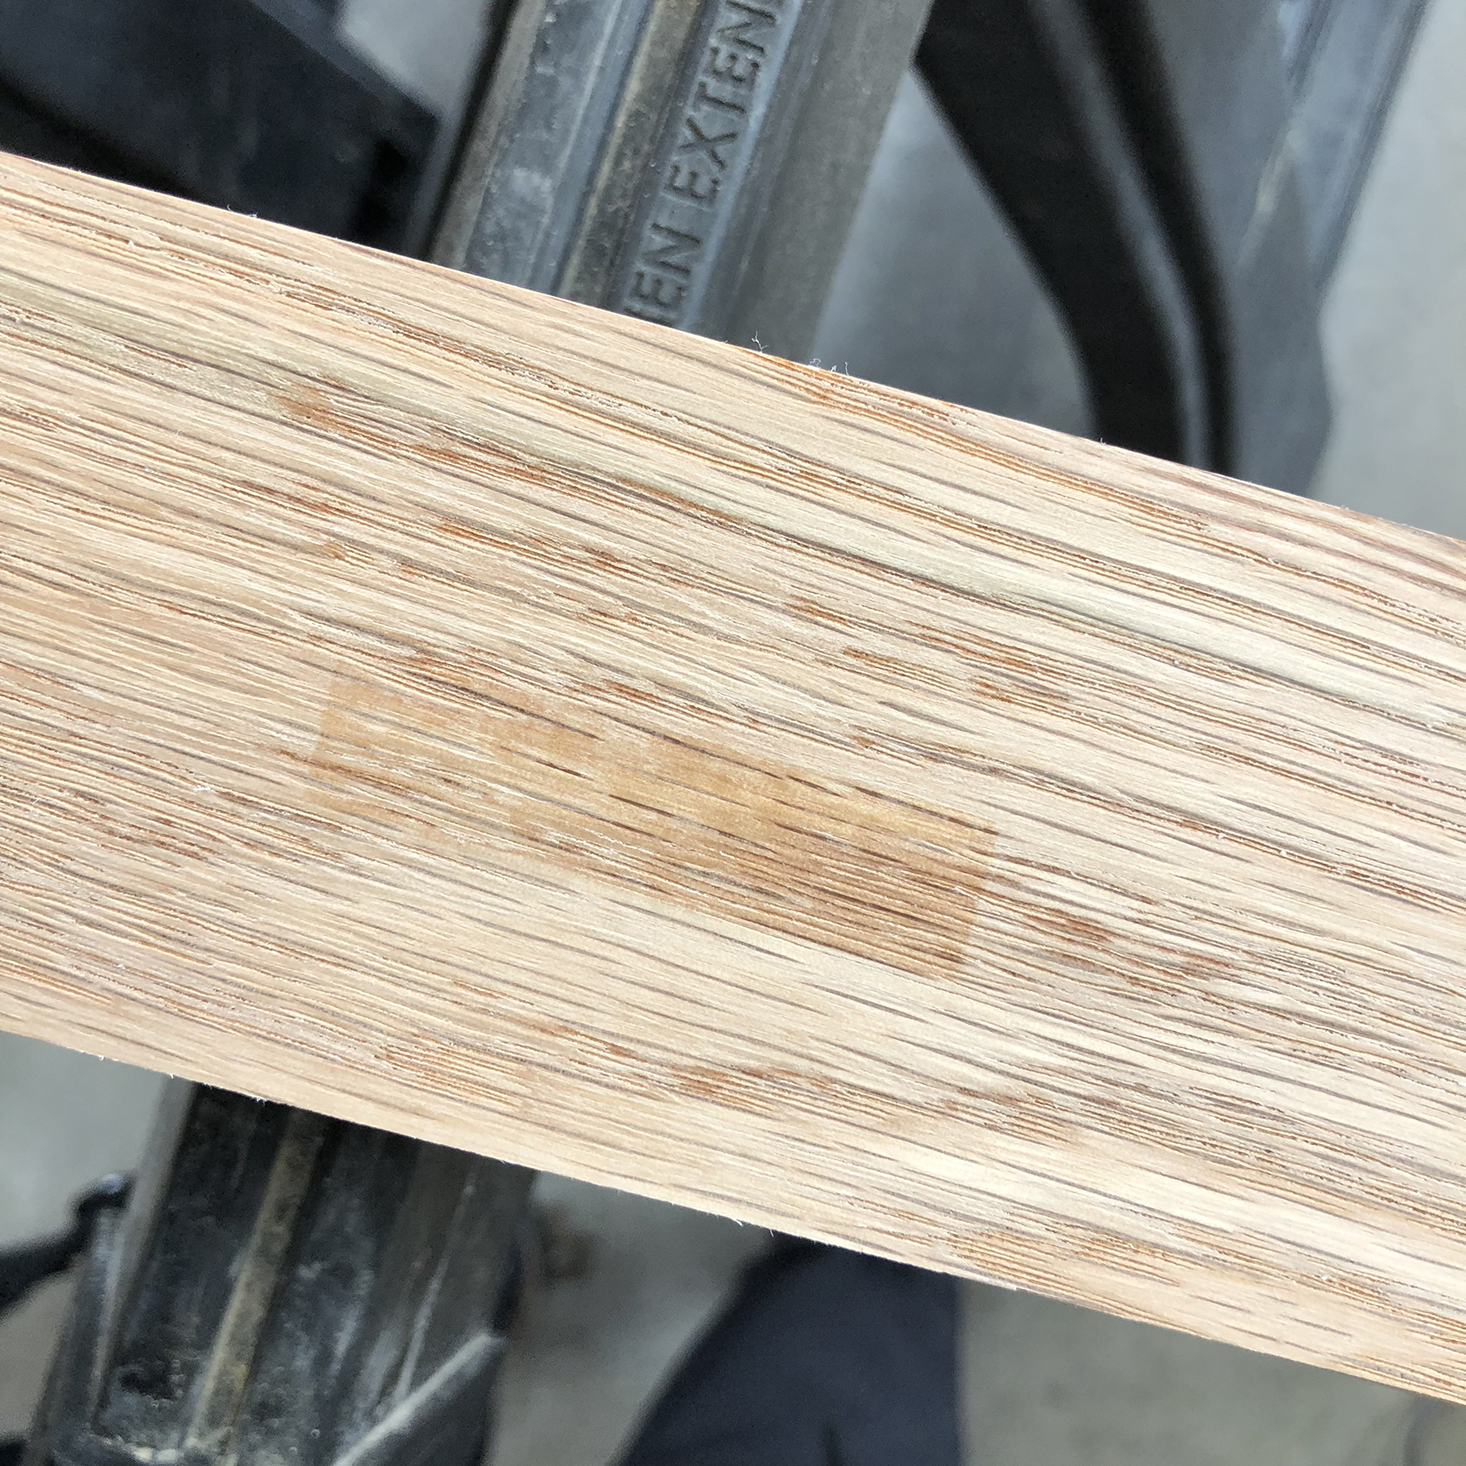 How to remove sticker residue from wood with rubbing alcohol